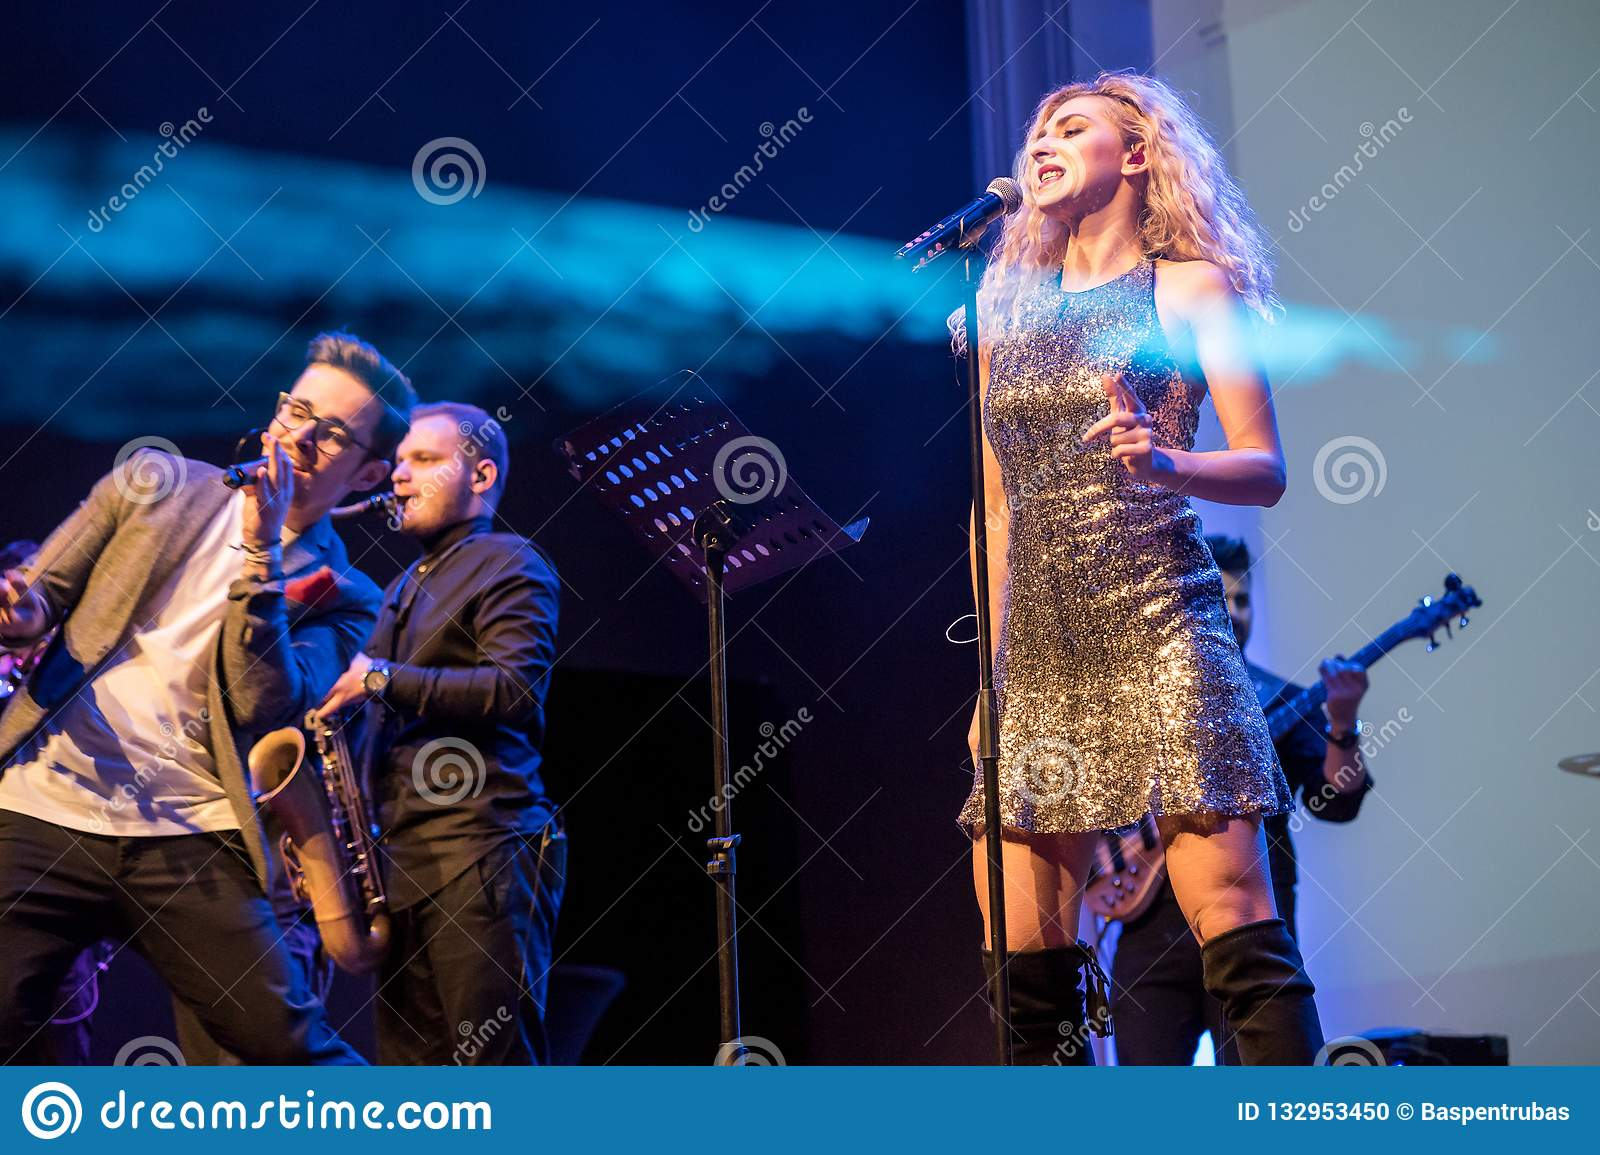 Band live concert editorial image  Image of romania - 132953450